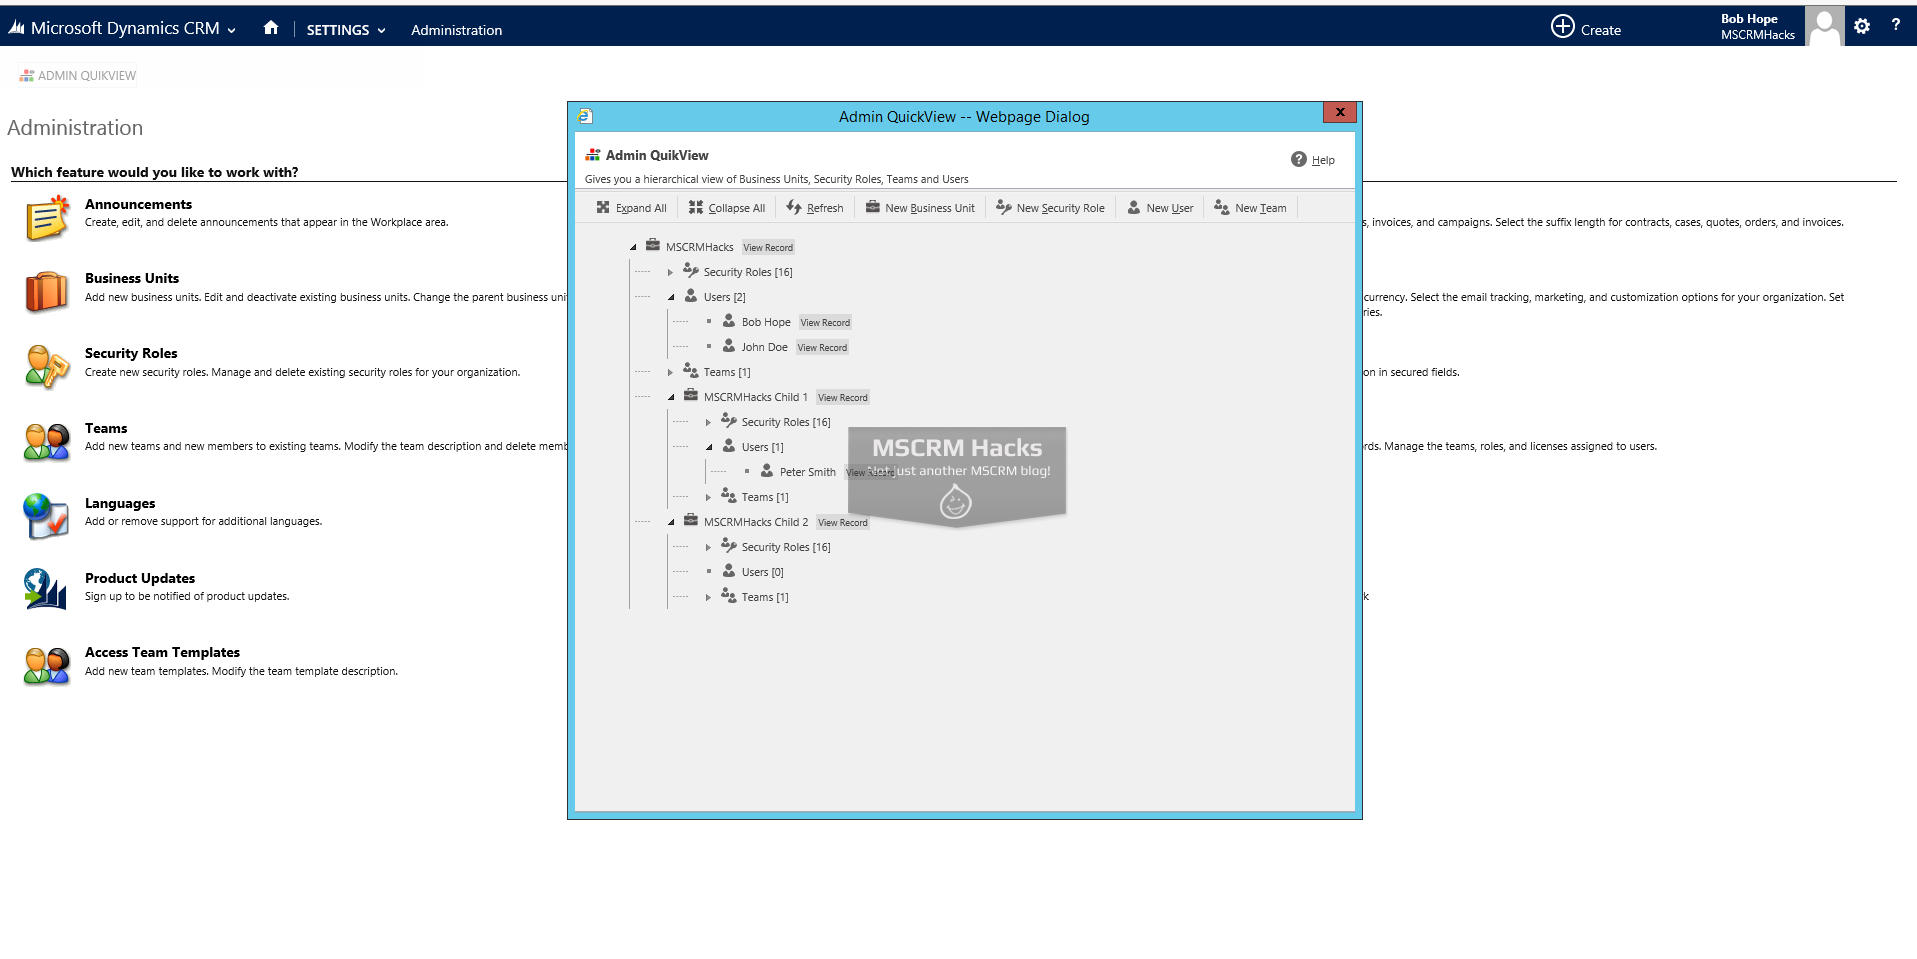 Admin QuikView Solution for CRM 2013 - Image 02